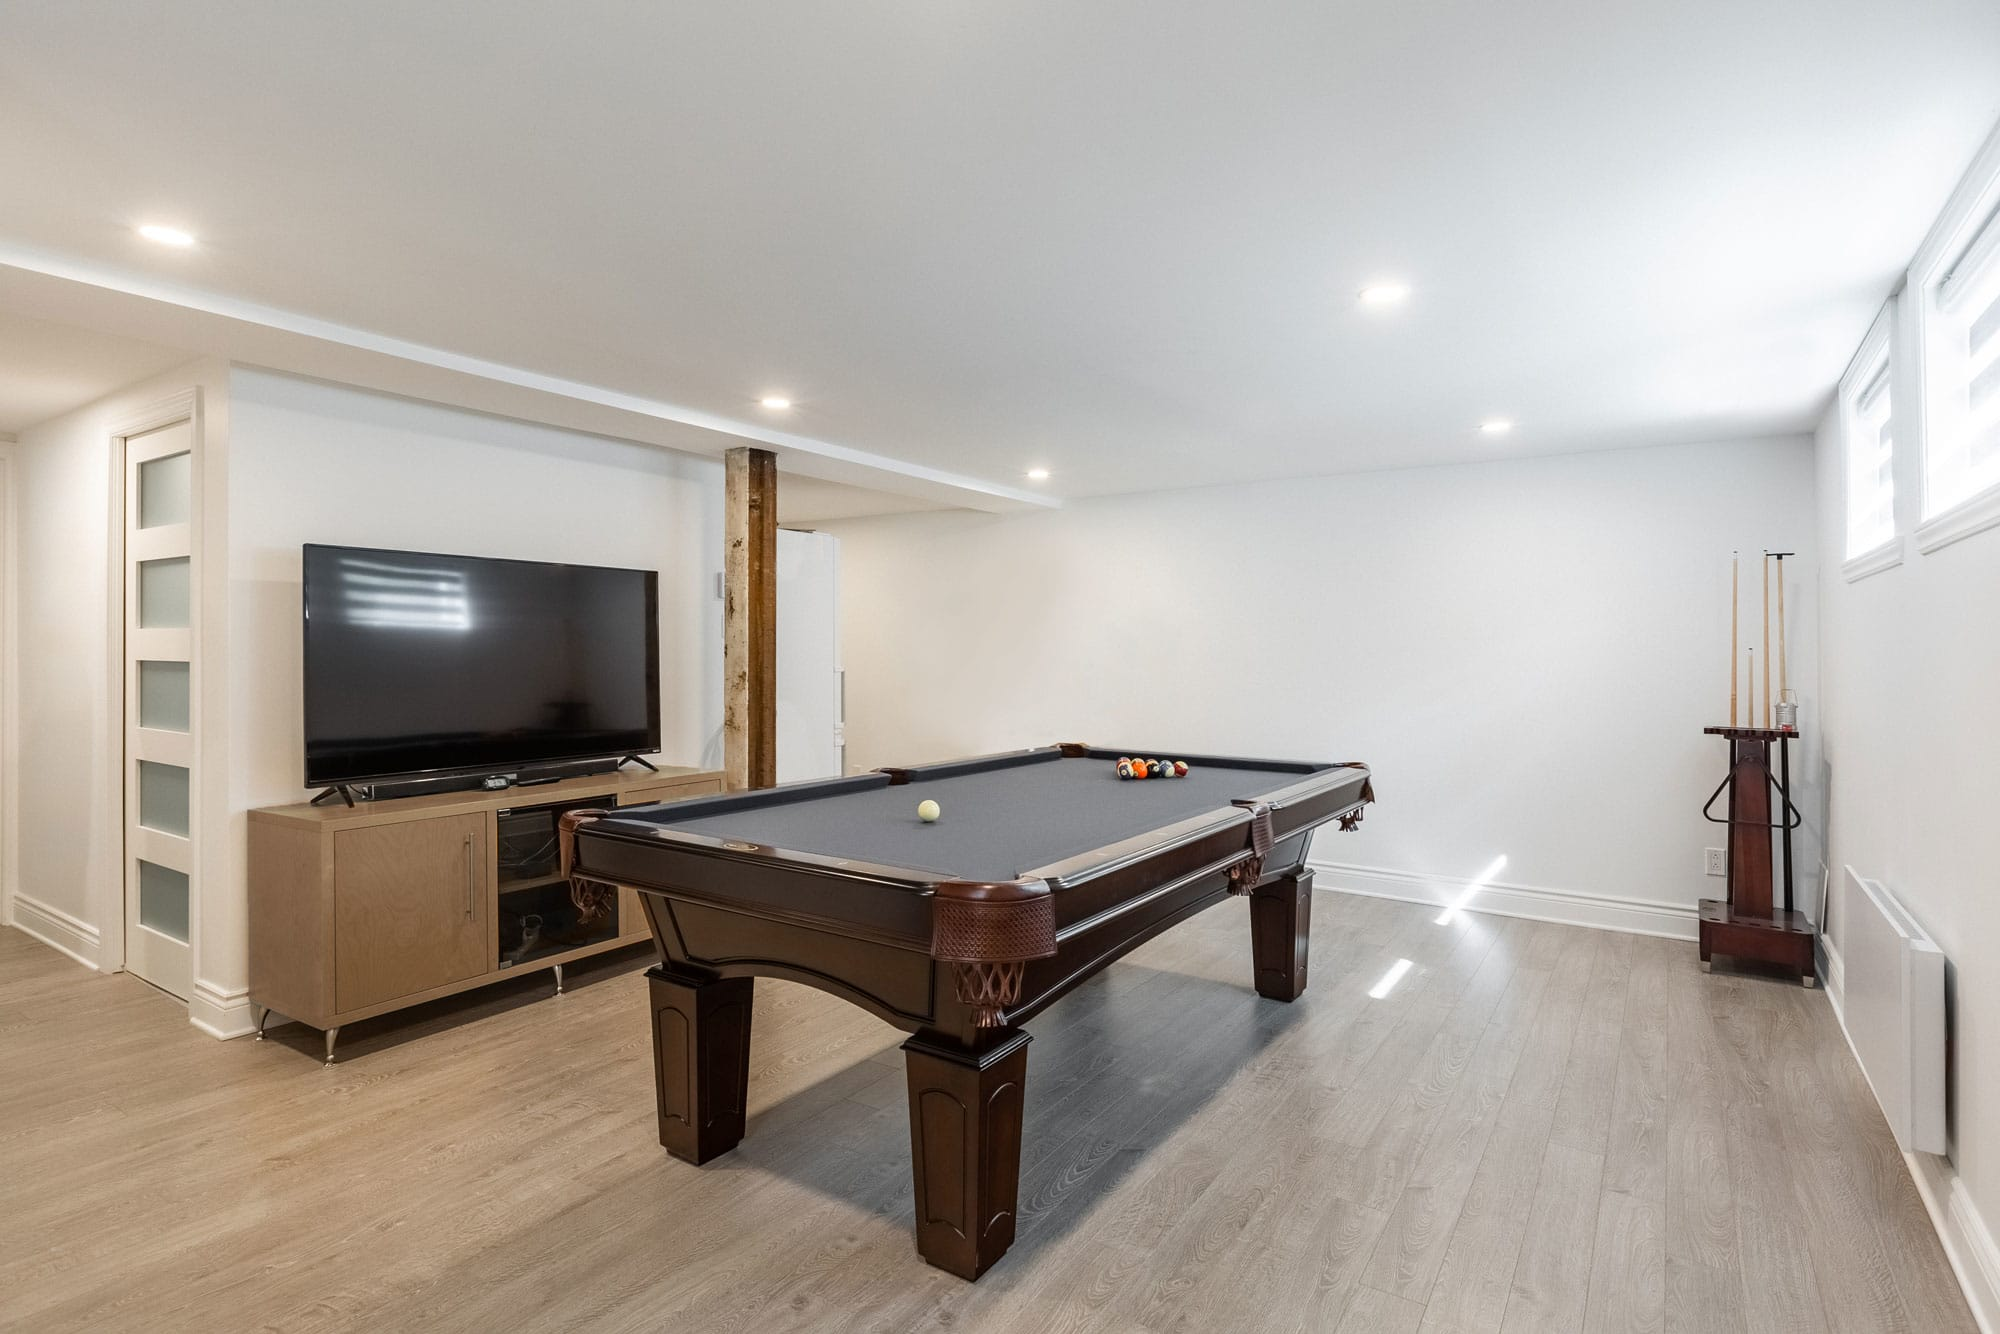 modern basement renovation with pool table and television